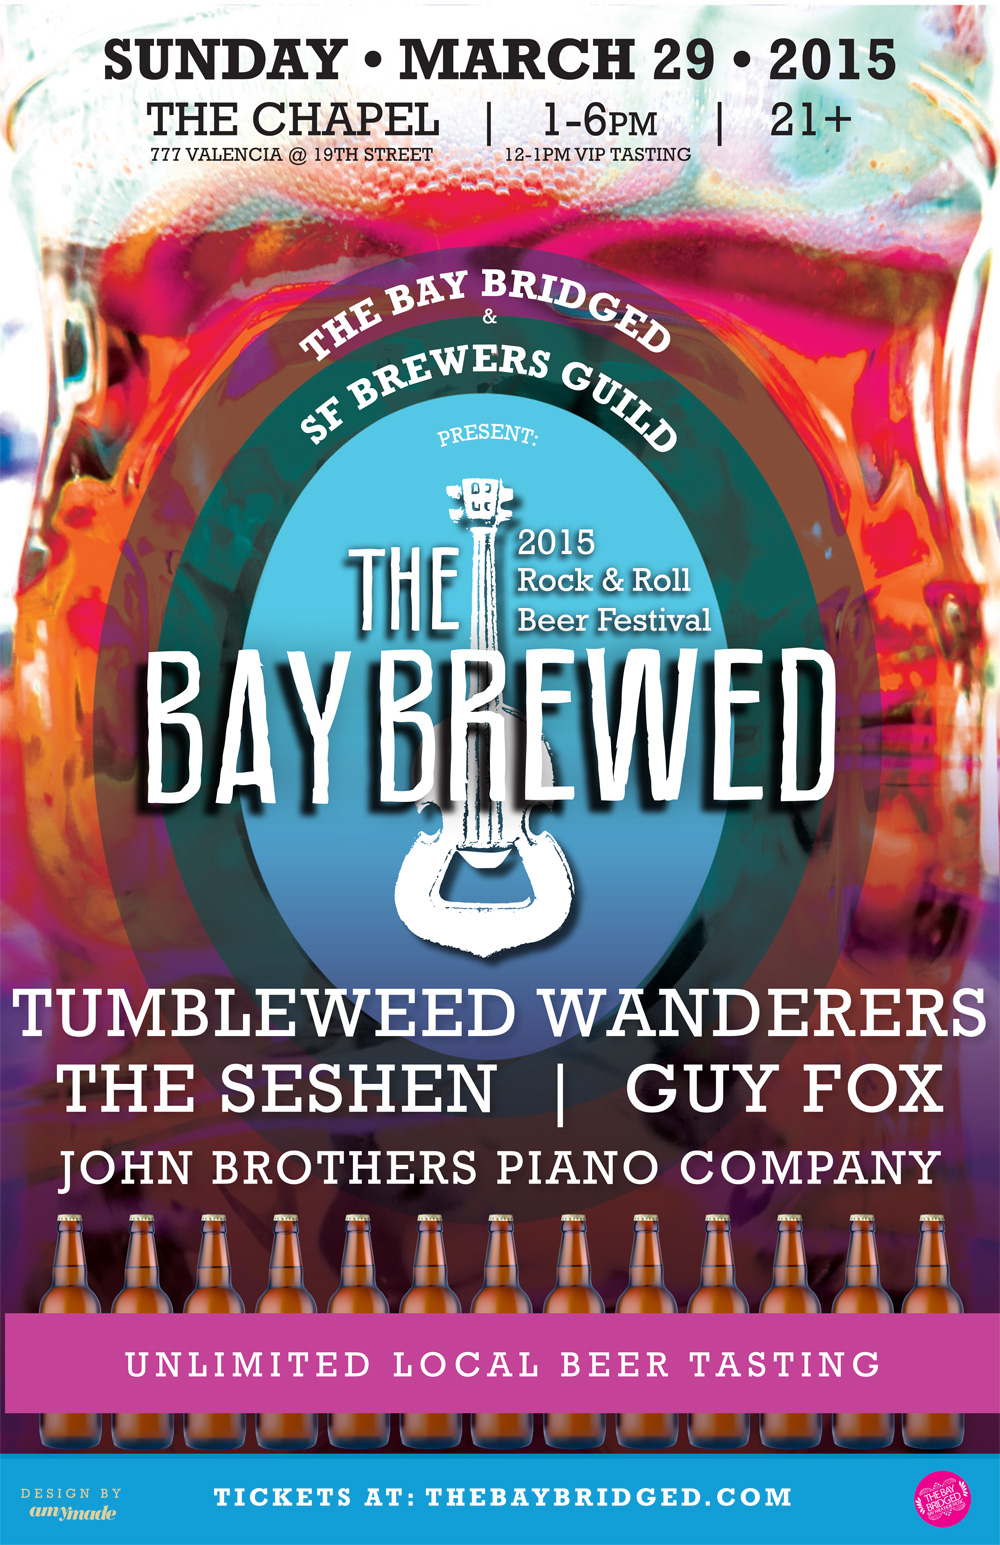 The Bay Brewed 2015: SF's only rock and roll beer festival returns in March!